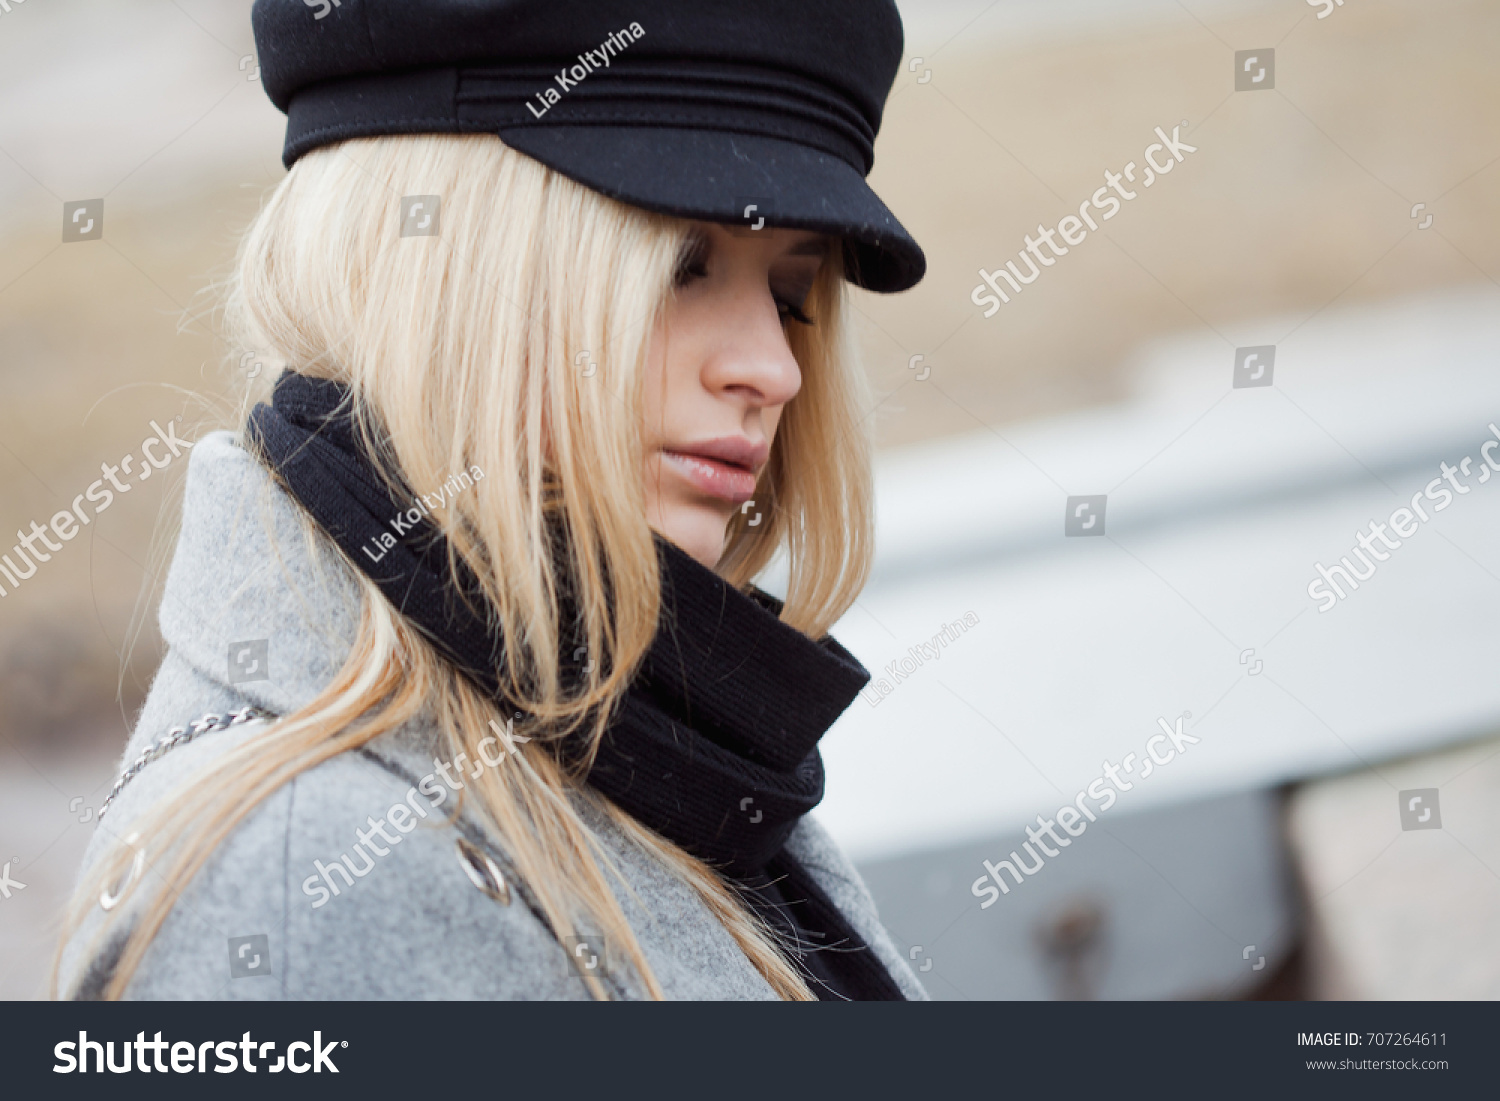 Look - Girl stylish images with hat video